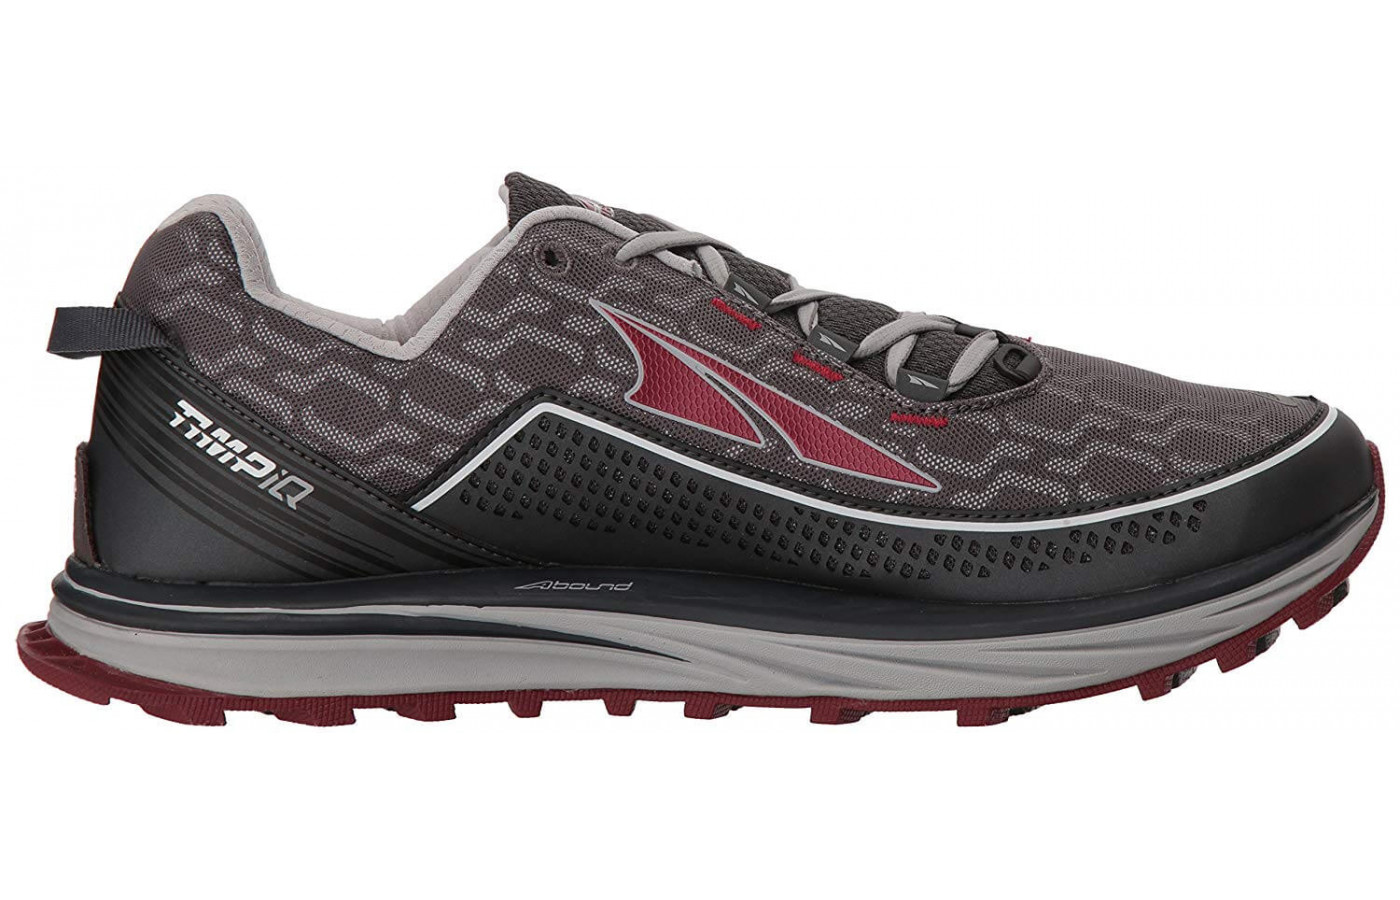 The TImp IQ is equipped with an ALTRA IQ footbed sensor